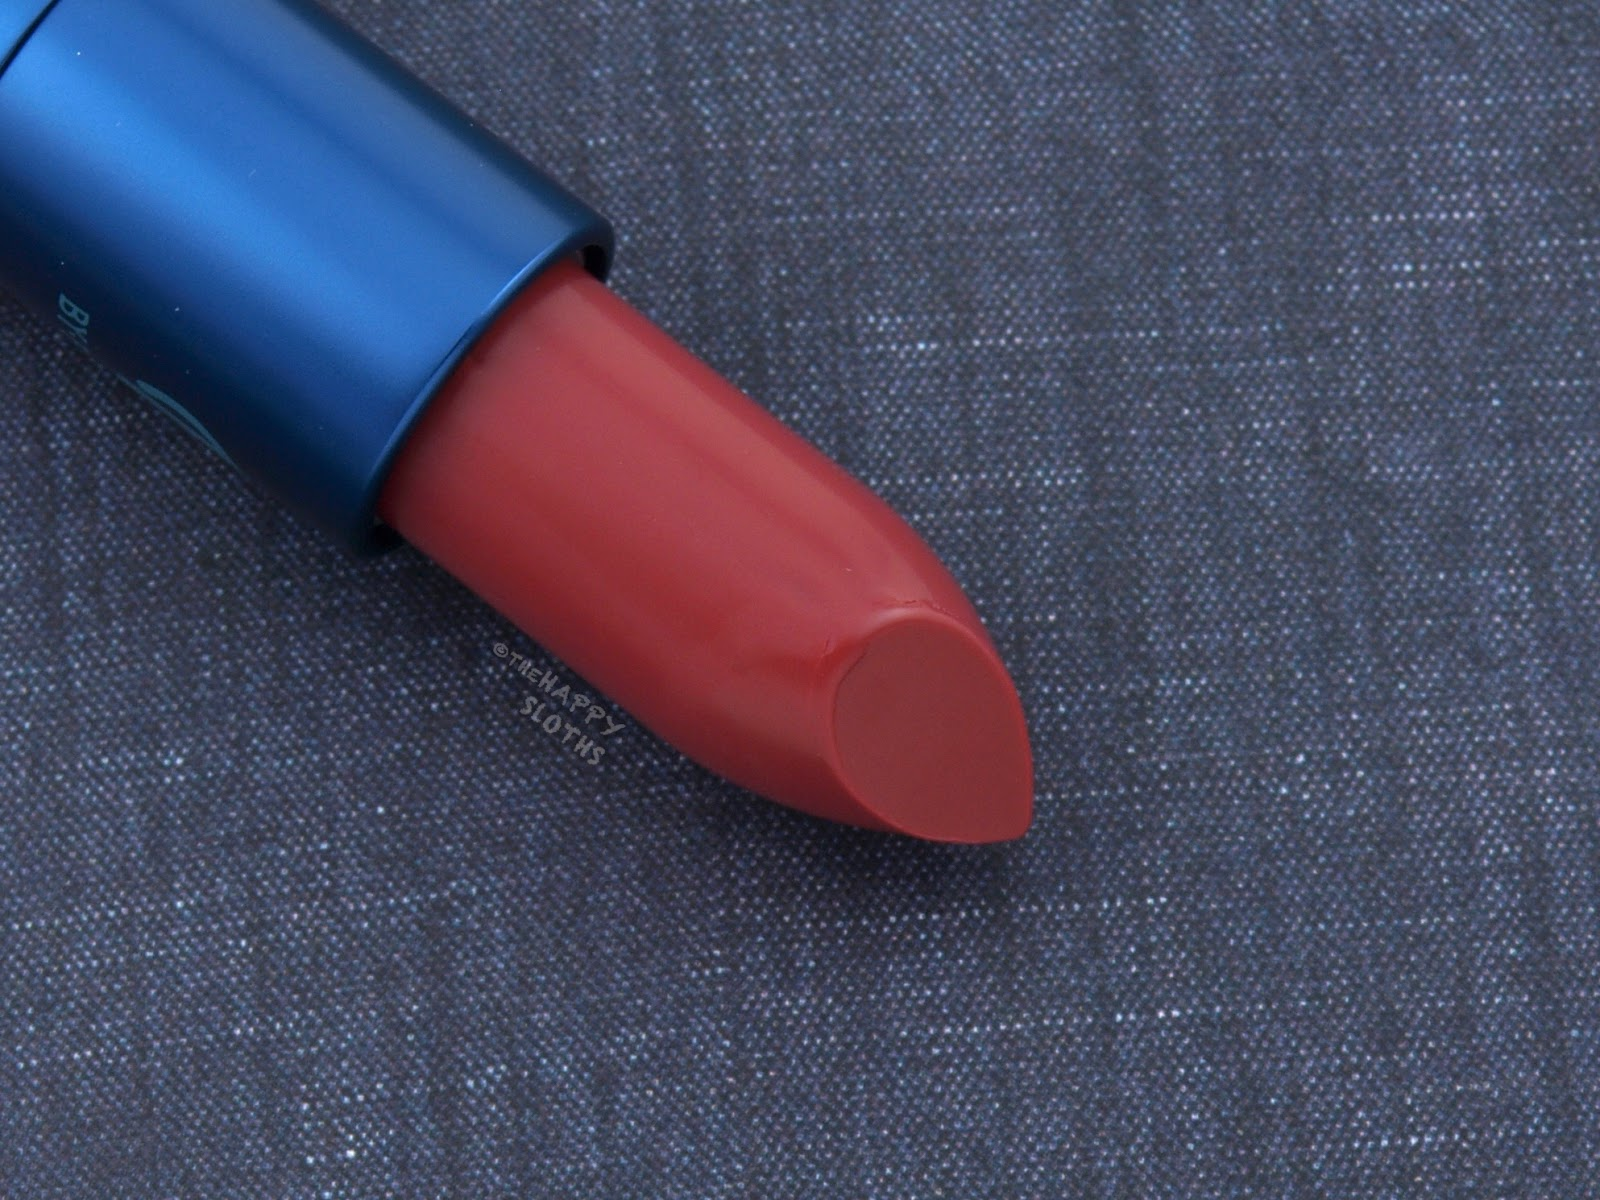 Lipstick Queen Jean Queen Lipstick: Review and Swatches